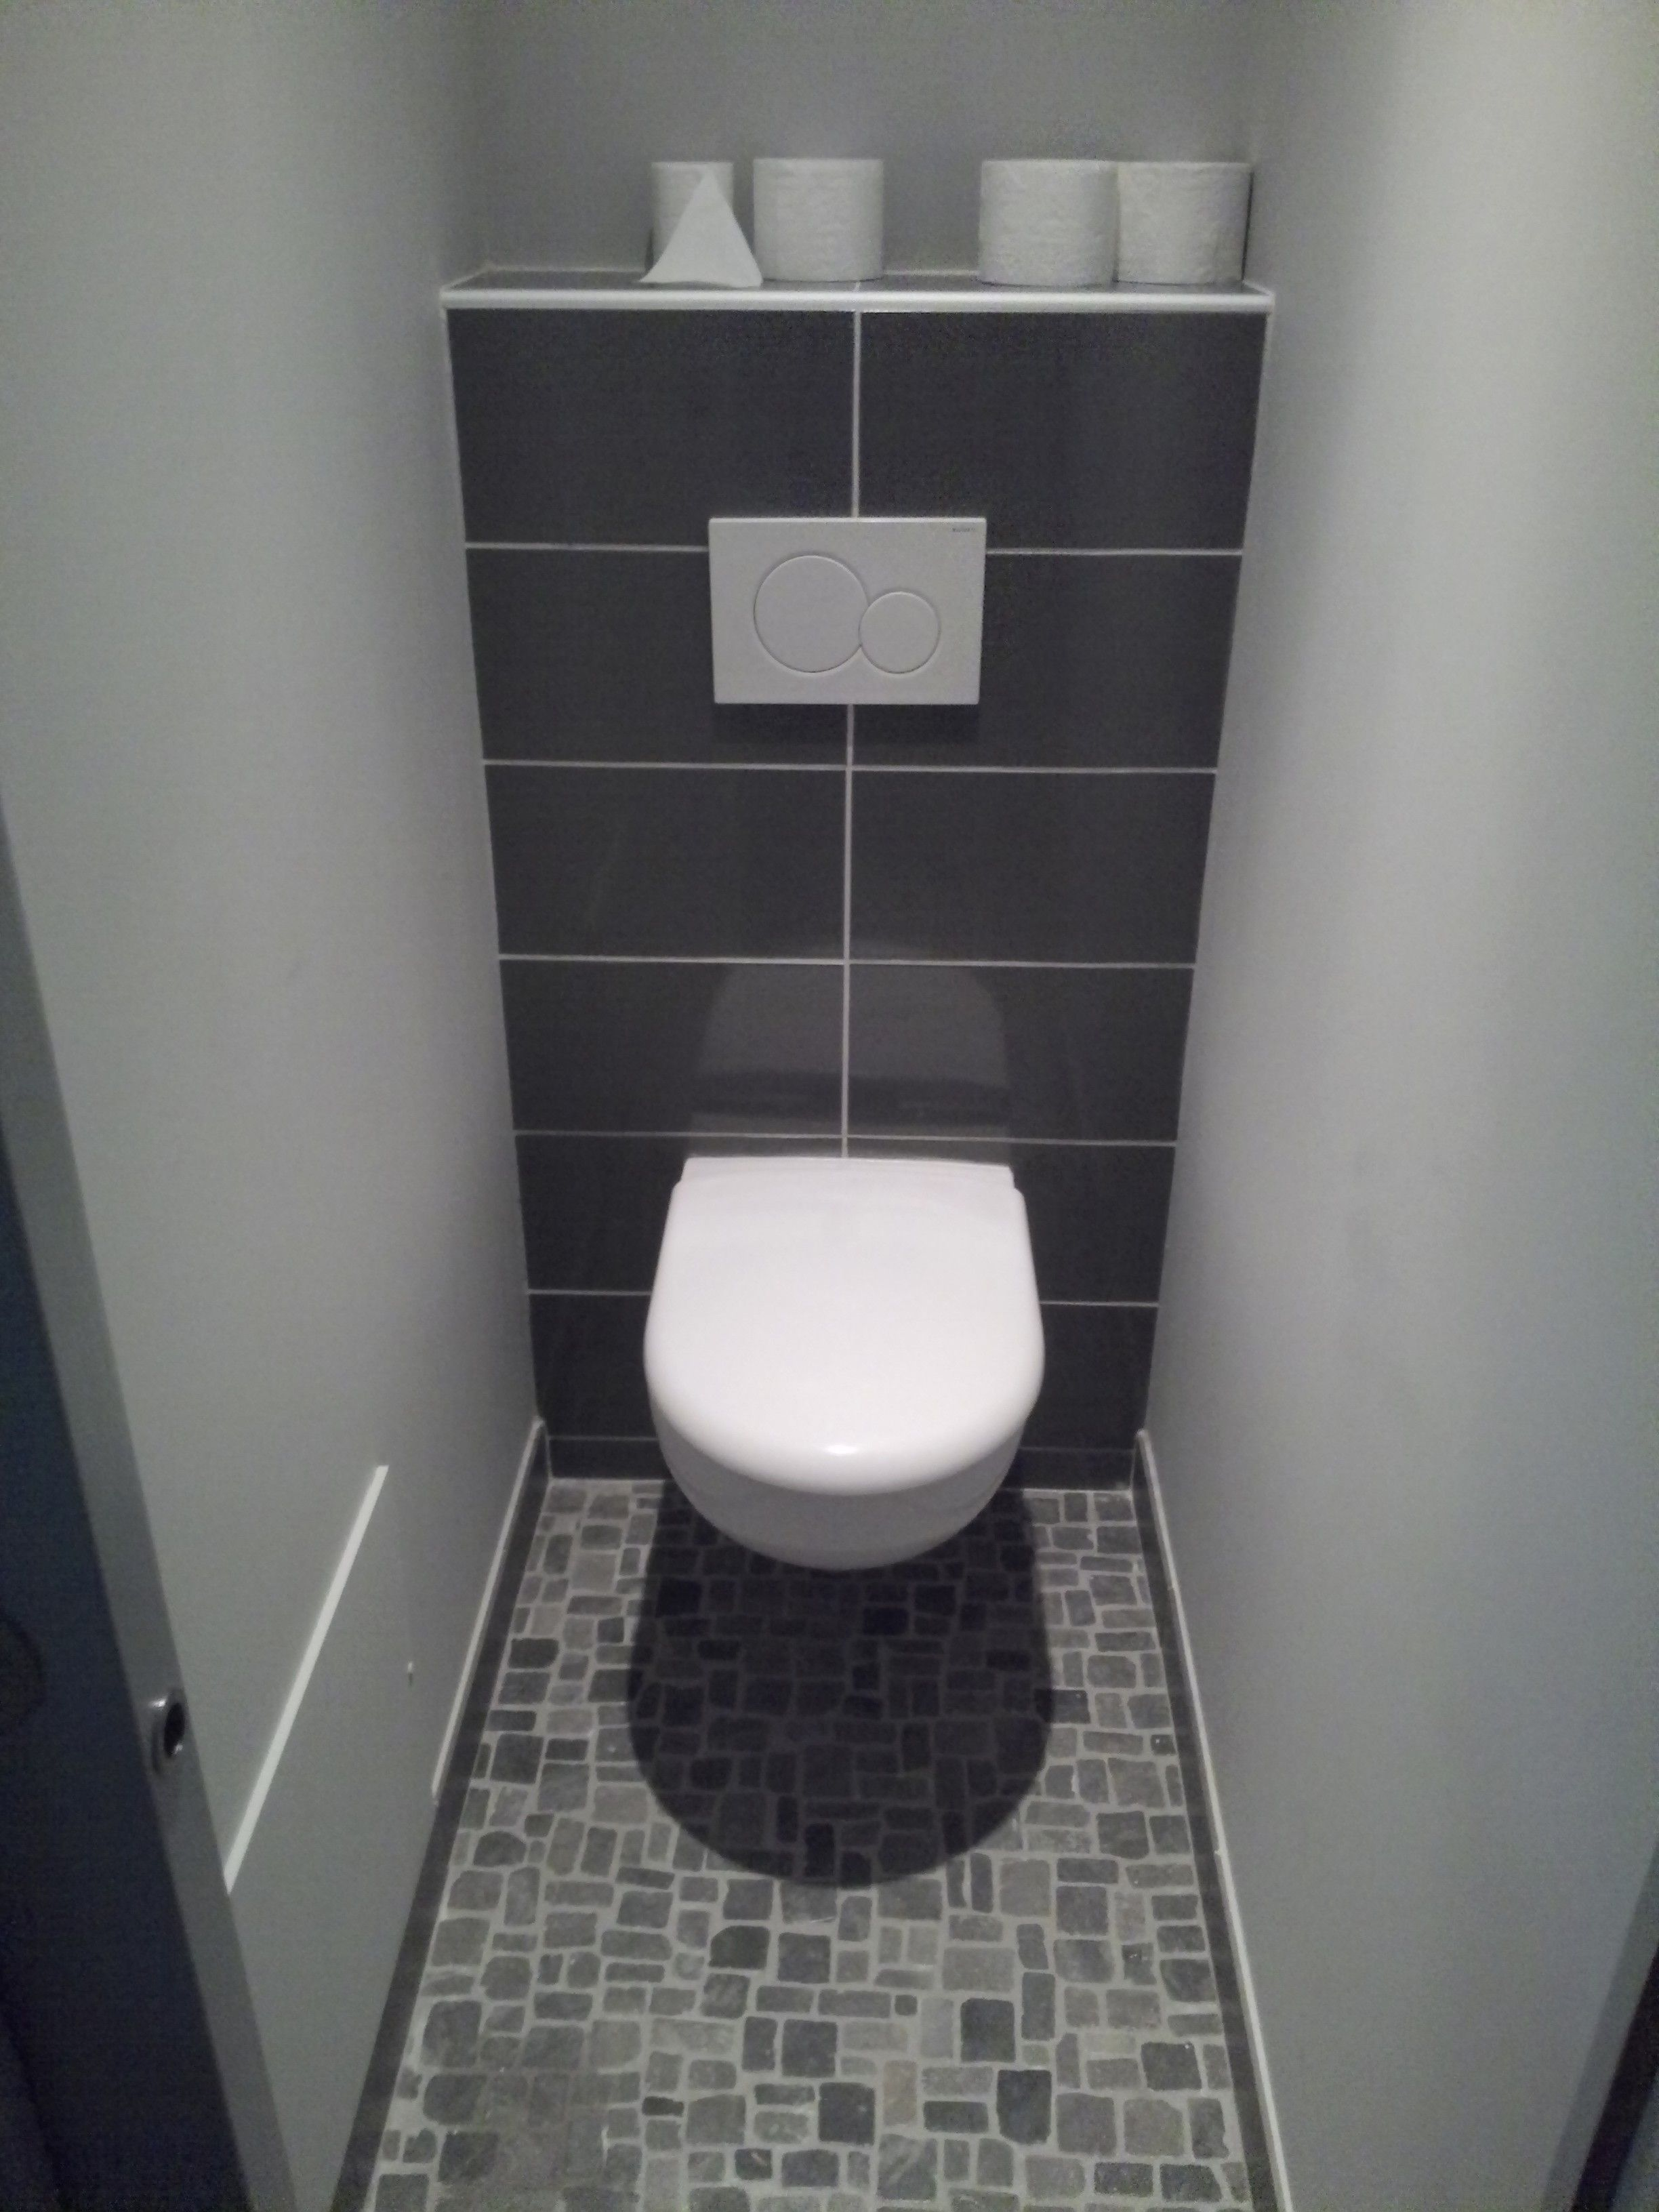 Idee deco carrelage salle de bain gris buscar con google for Wc suspendu decoration